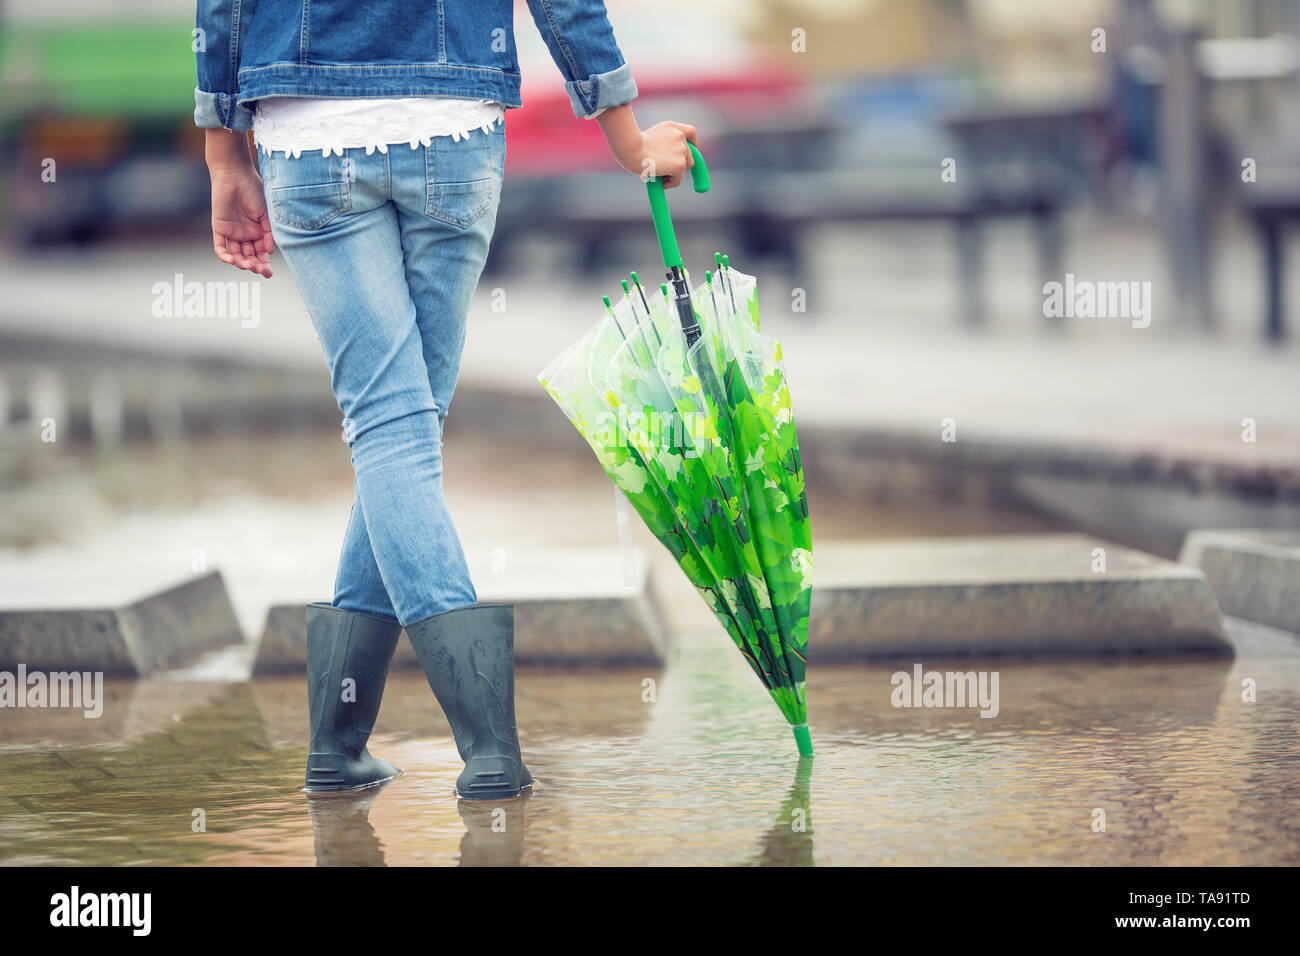 Young pre-teen girl stands with an umbrella in puddle after spring or summer rain. - Stock Image